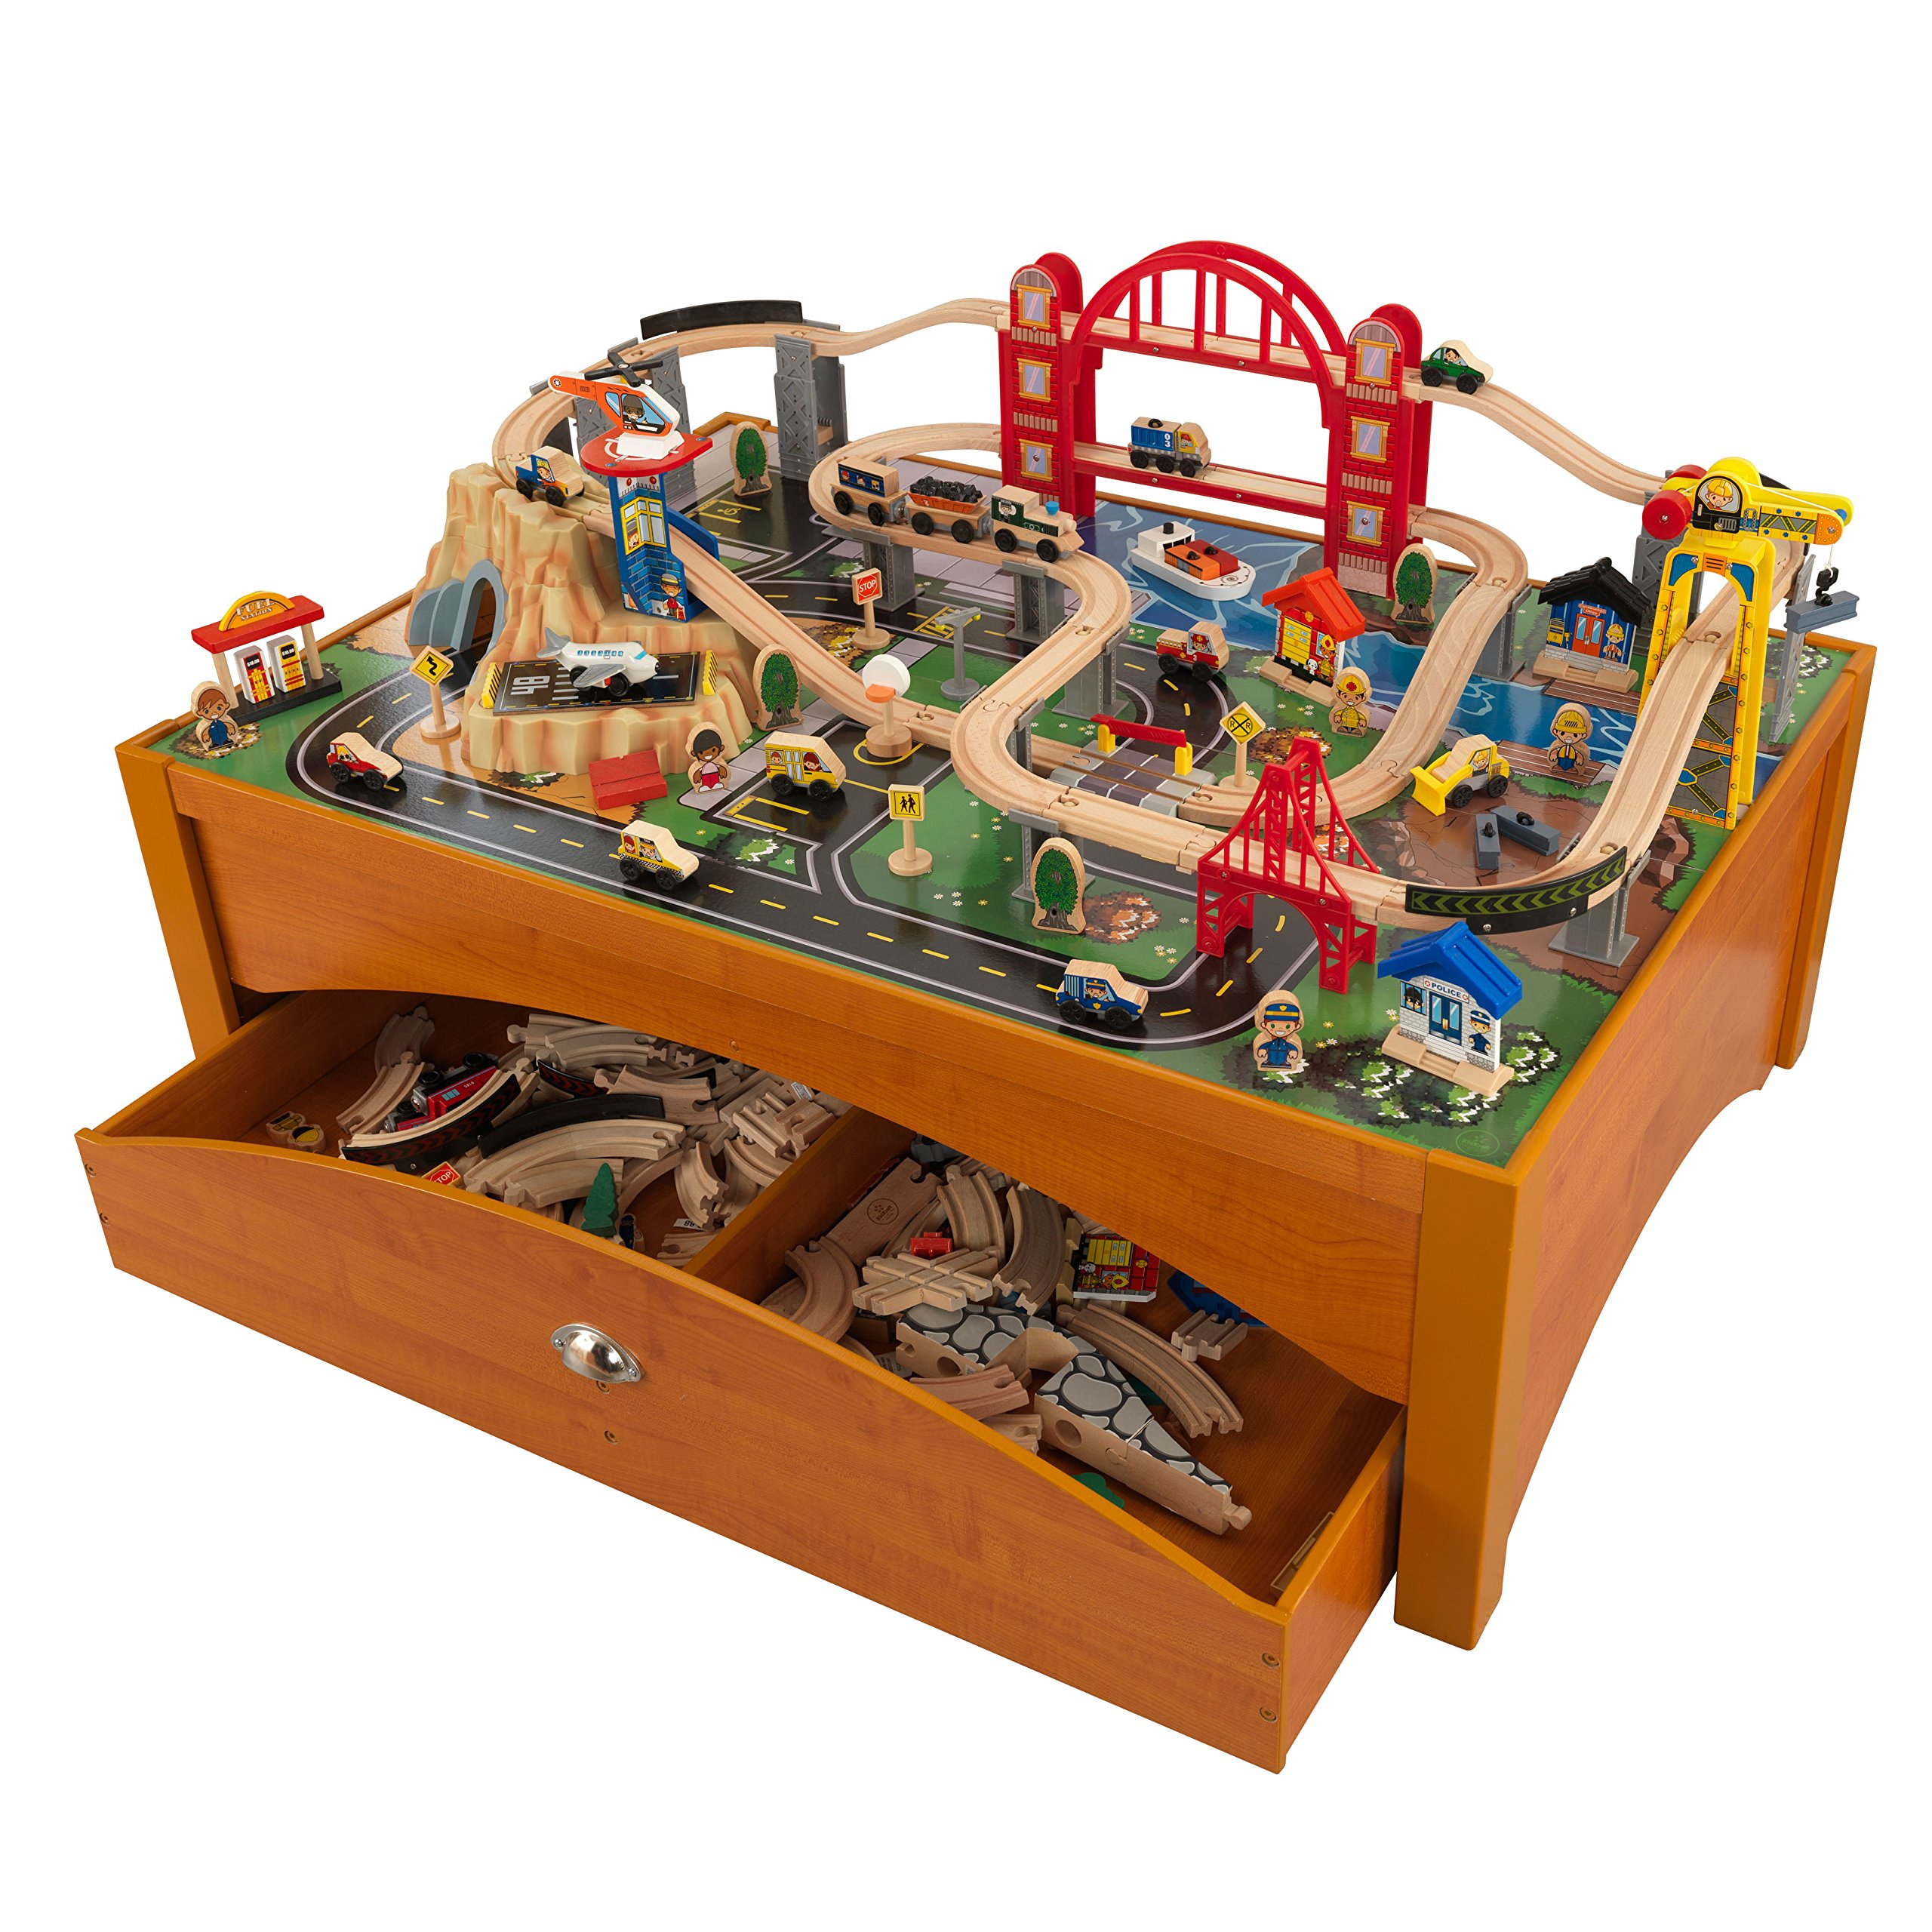 Awesome Kidkraft Espresso Train Table With Spiral Quarry Train Set ...  Awesome Kidkraft Espresso Train Table With Spiral Quarry Train Set